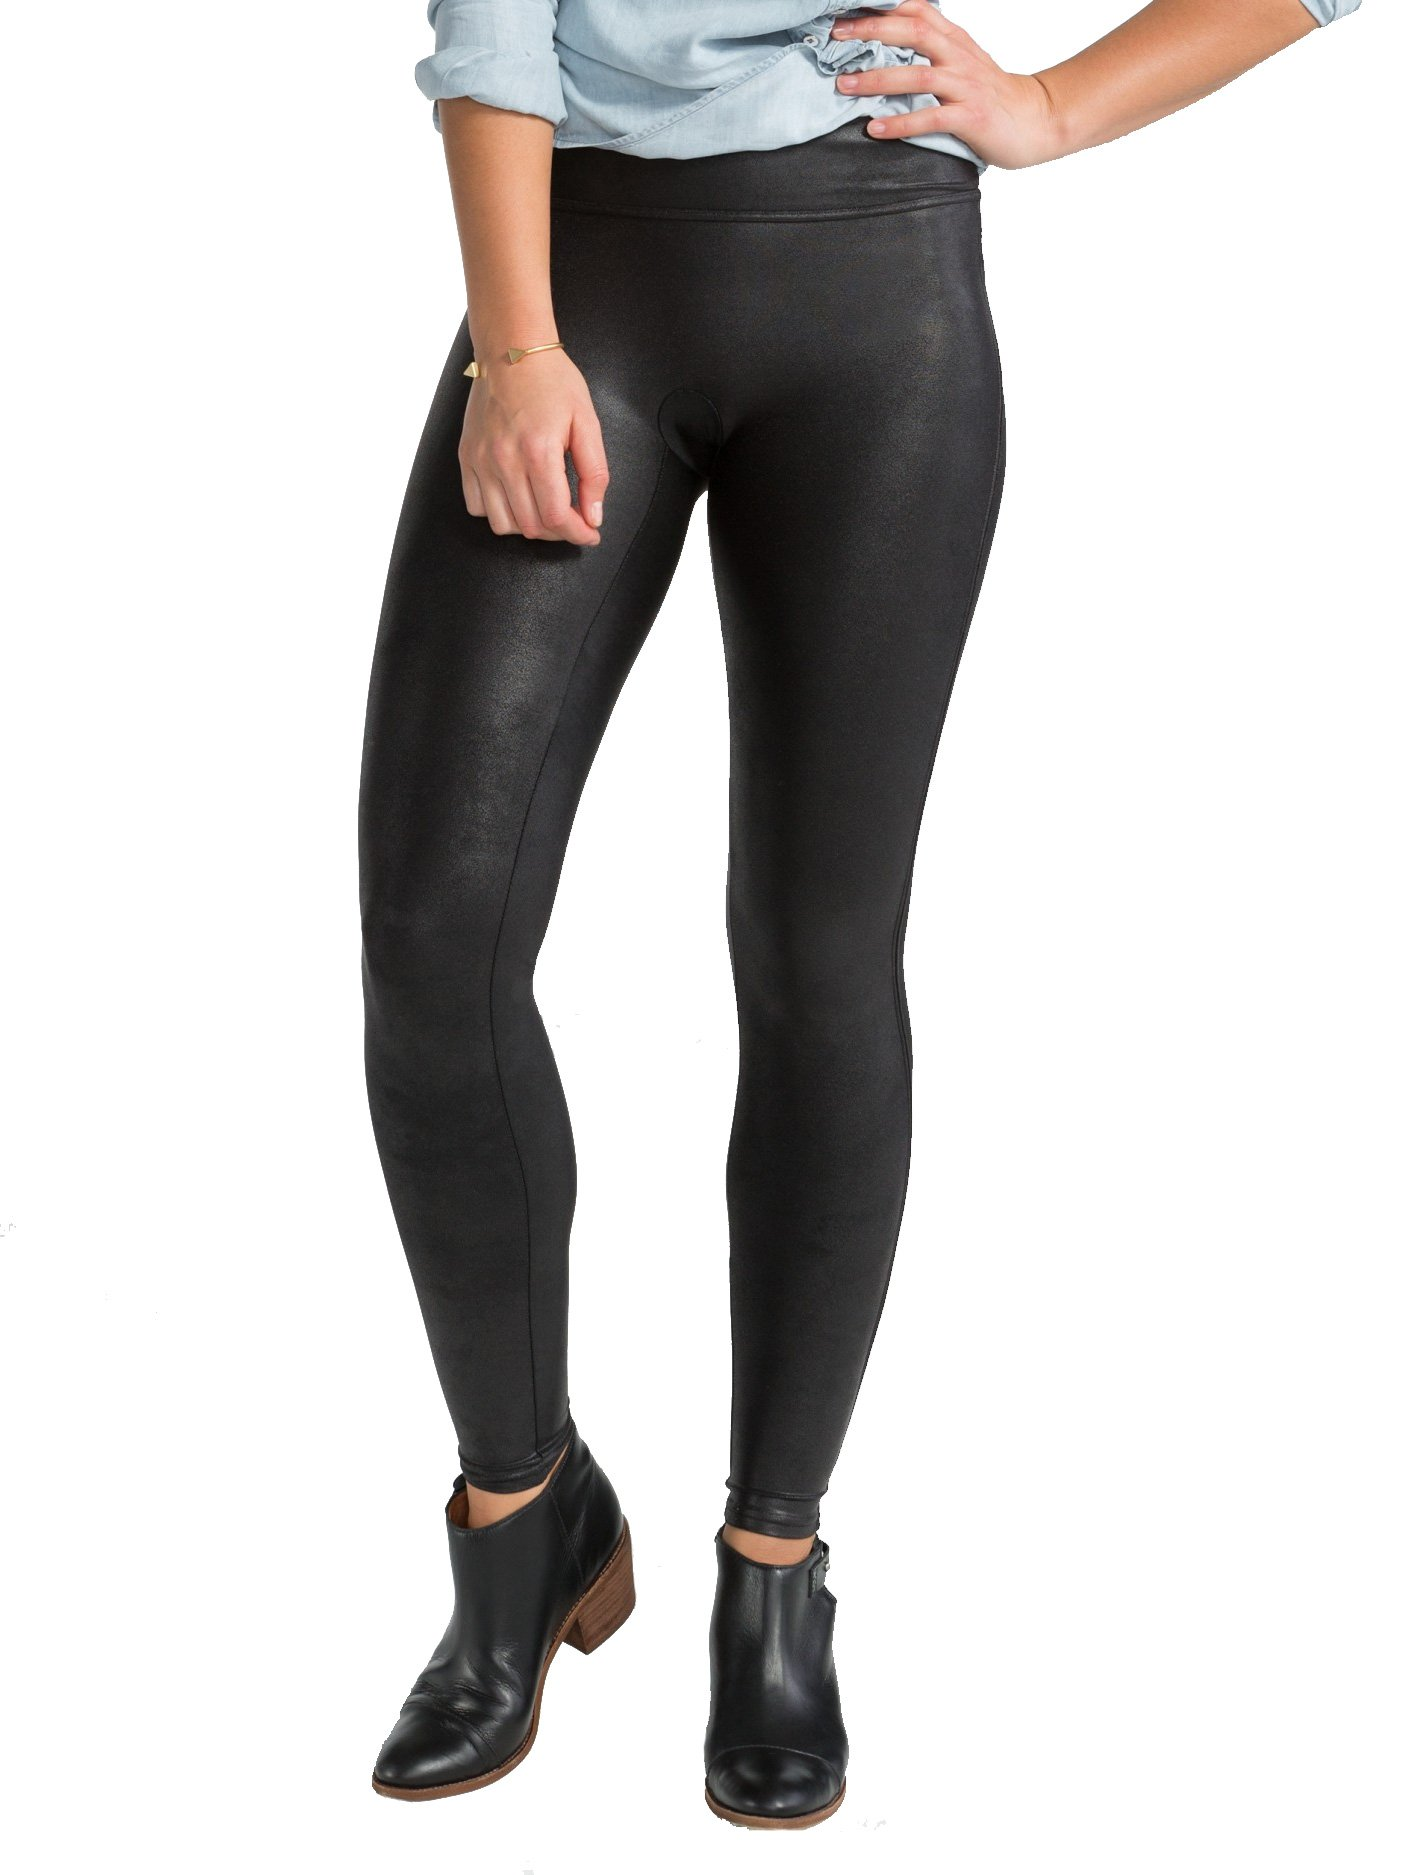 SPANX Plus Size Ready-To-Wow Faux Leather Leggings, 1X, Black